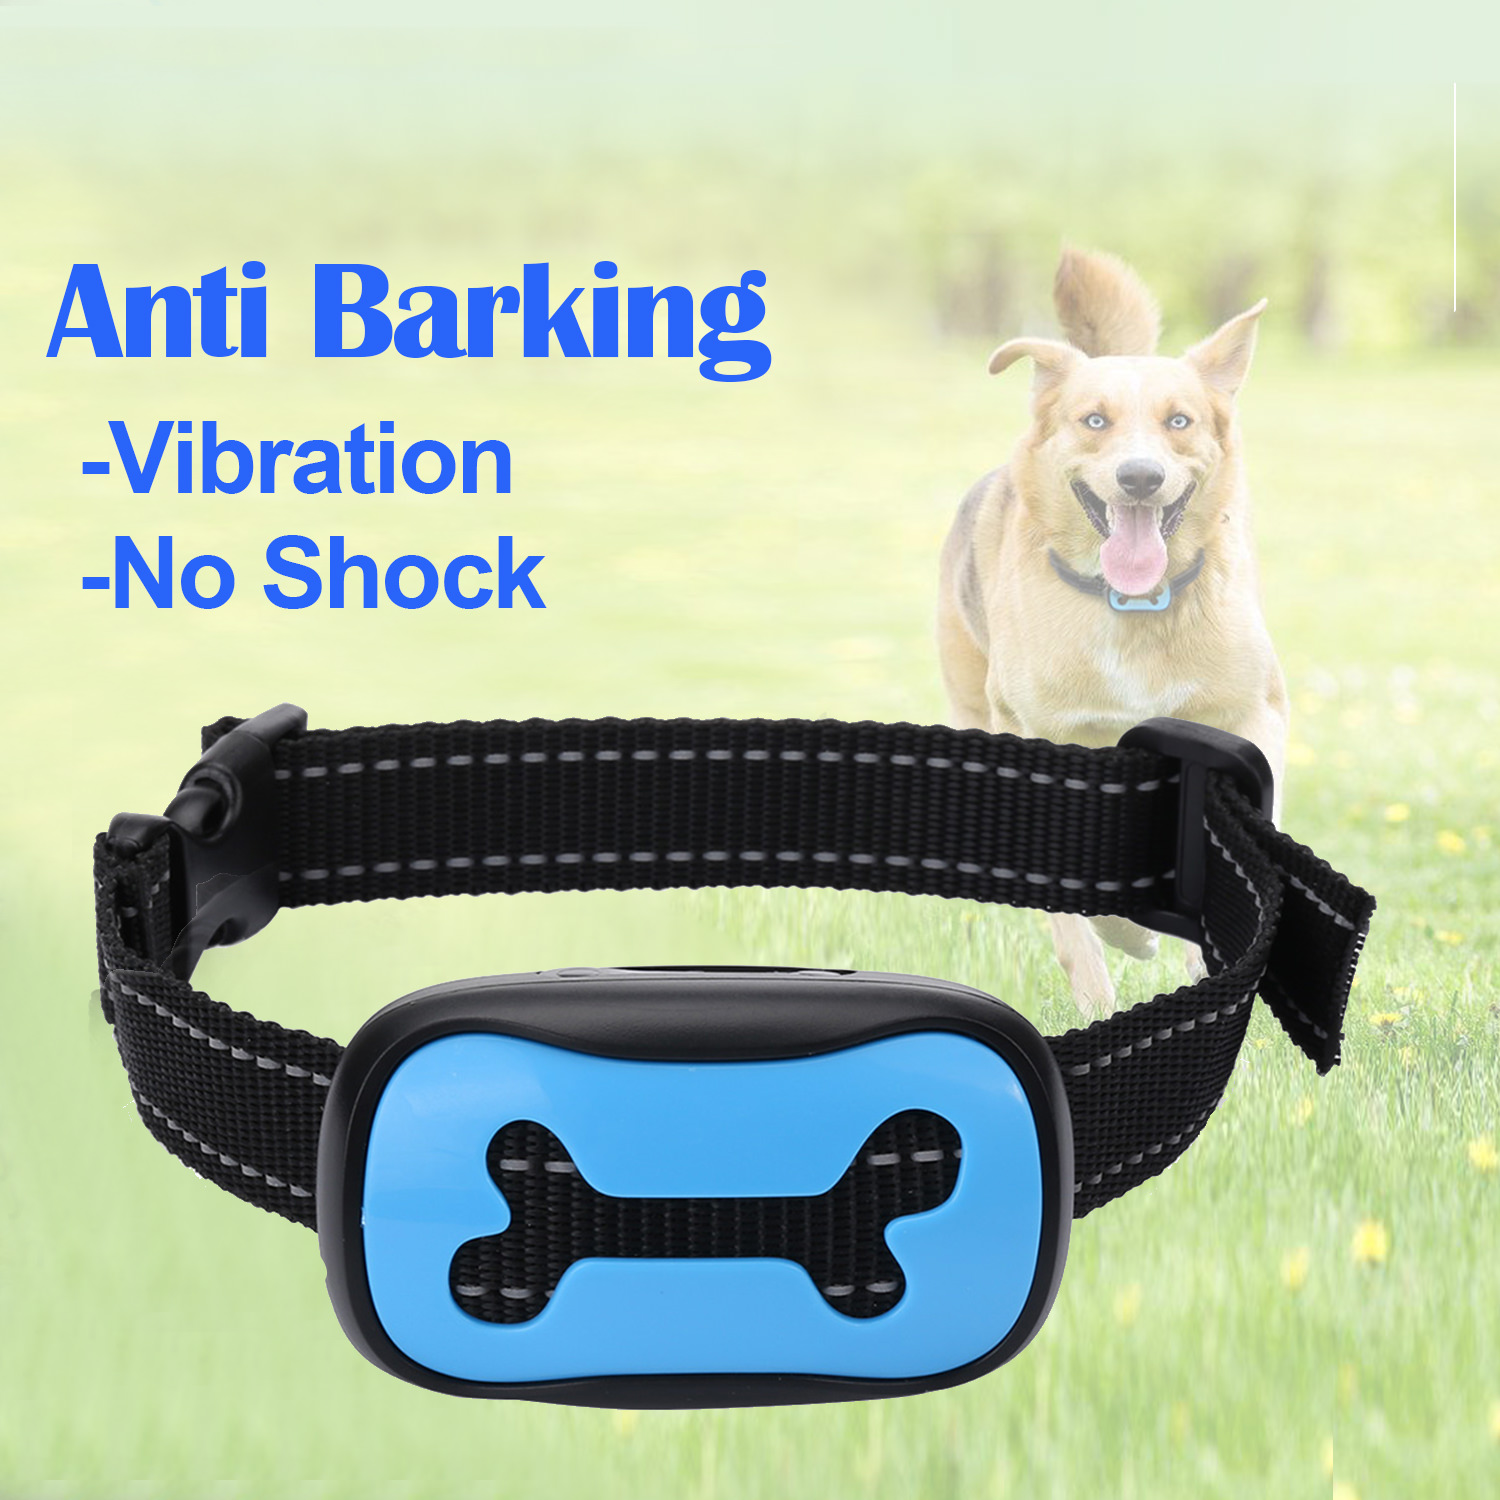 Anti Barking Collar for Dogs, Adjustable No Bark Devices Anti-Bark No Shock Sound and Vibration Collars for Small/Medium/Large Dogs